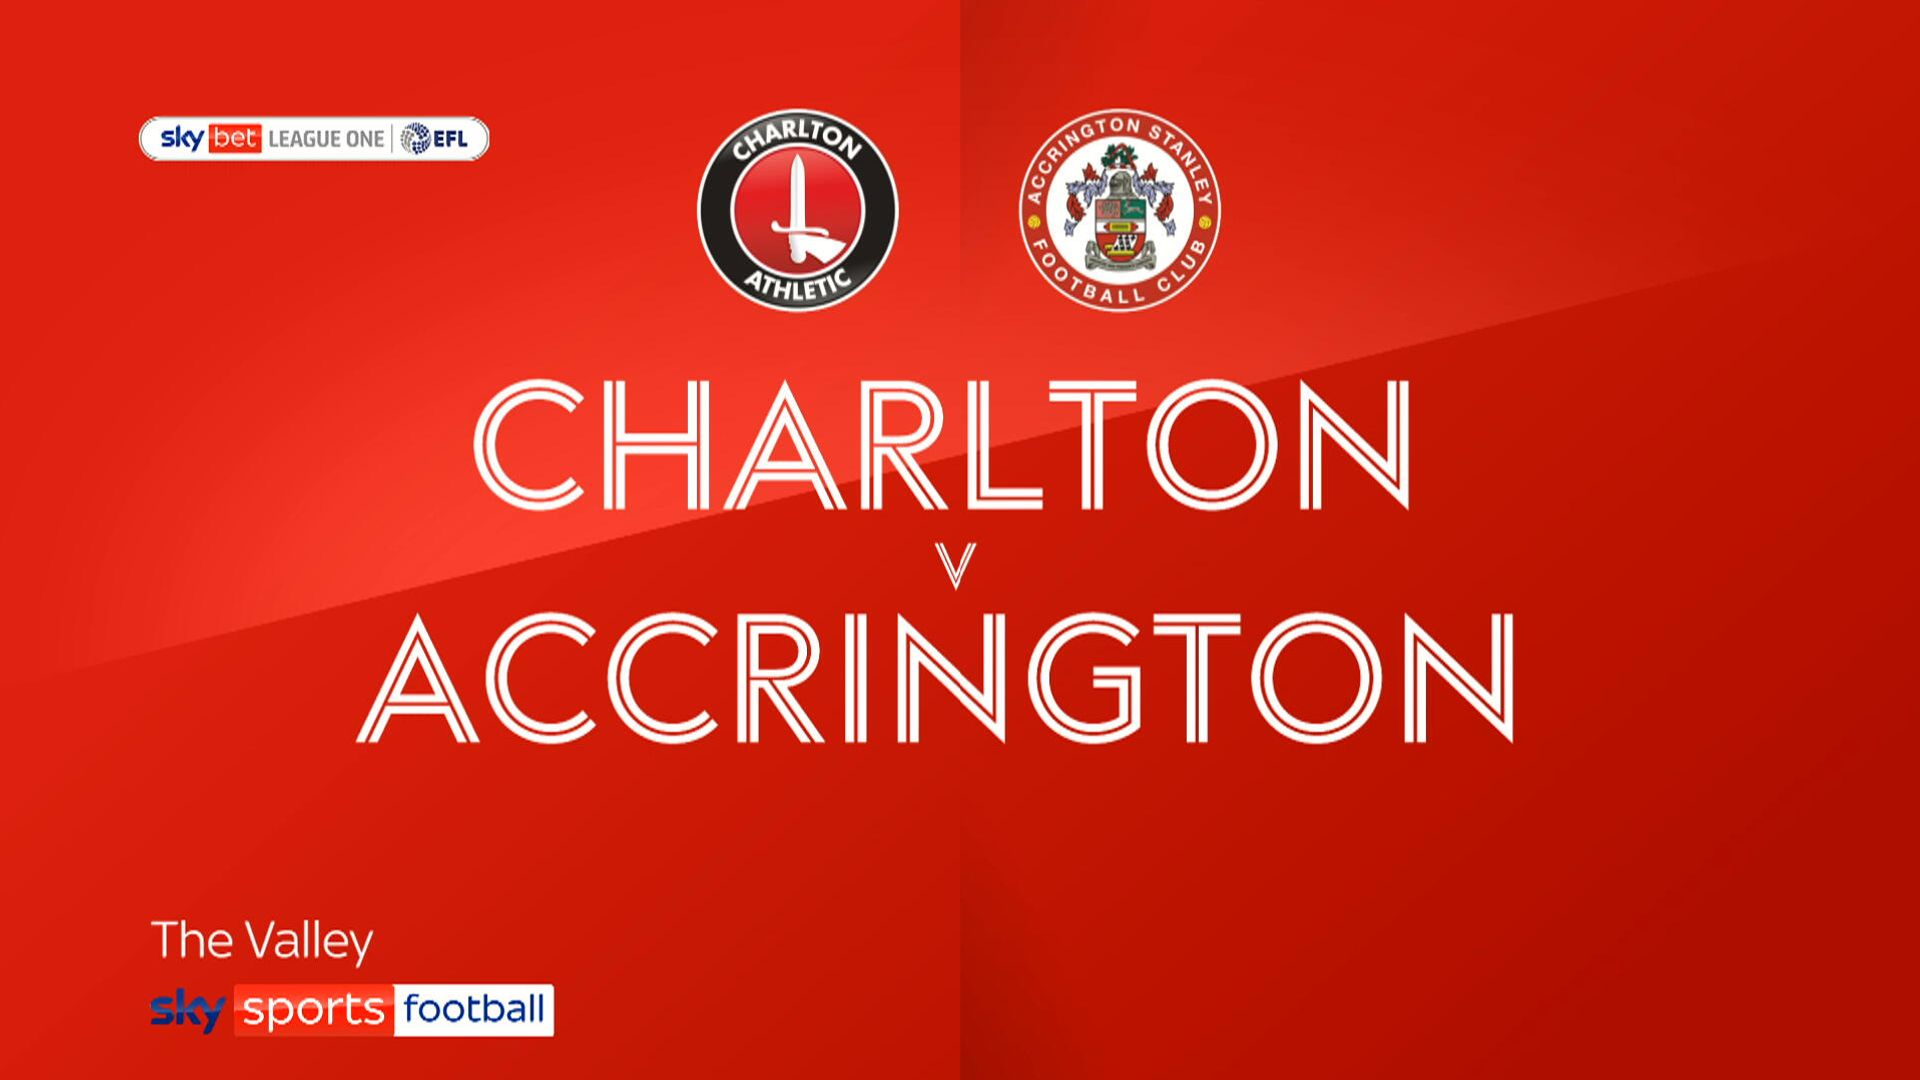 Accrington up to fifth after win at Charlton